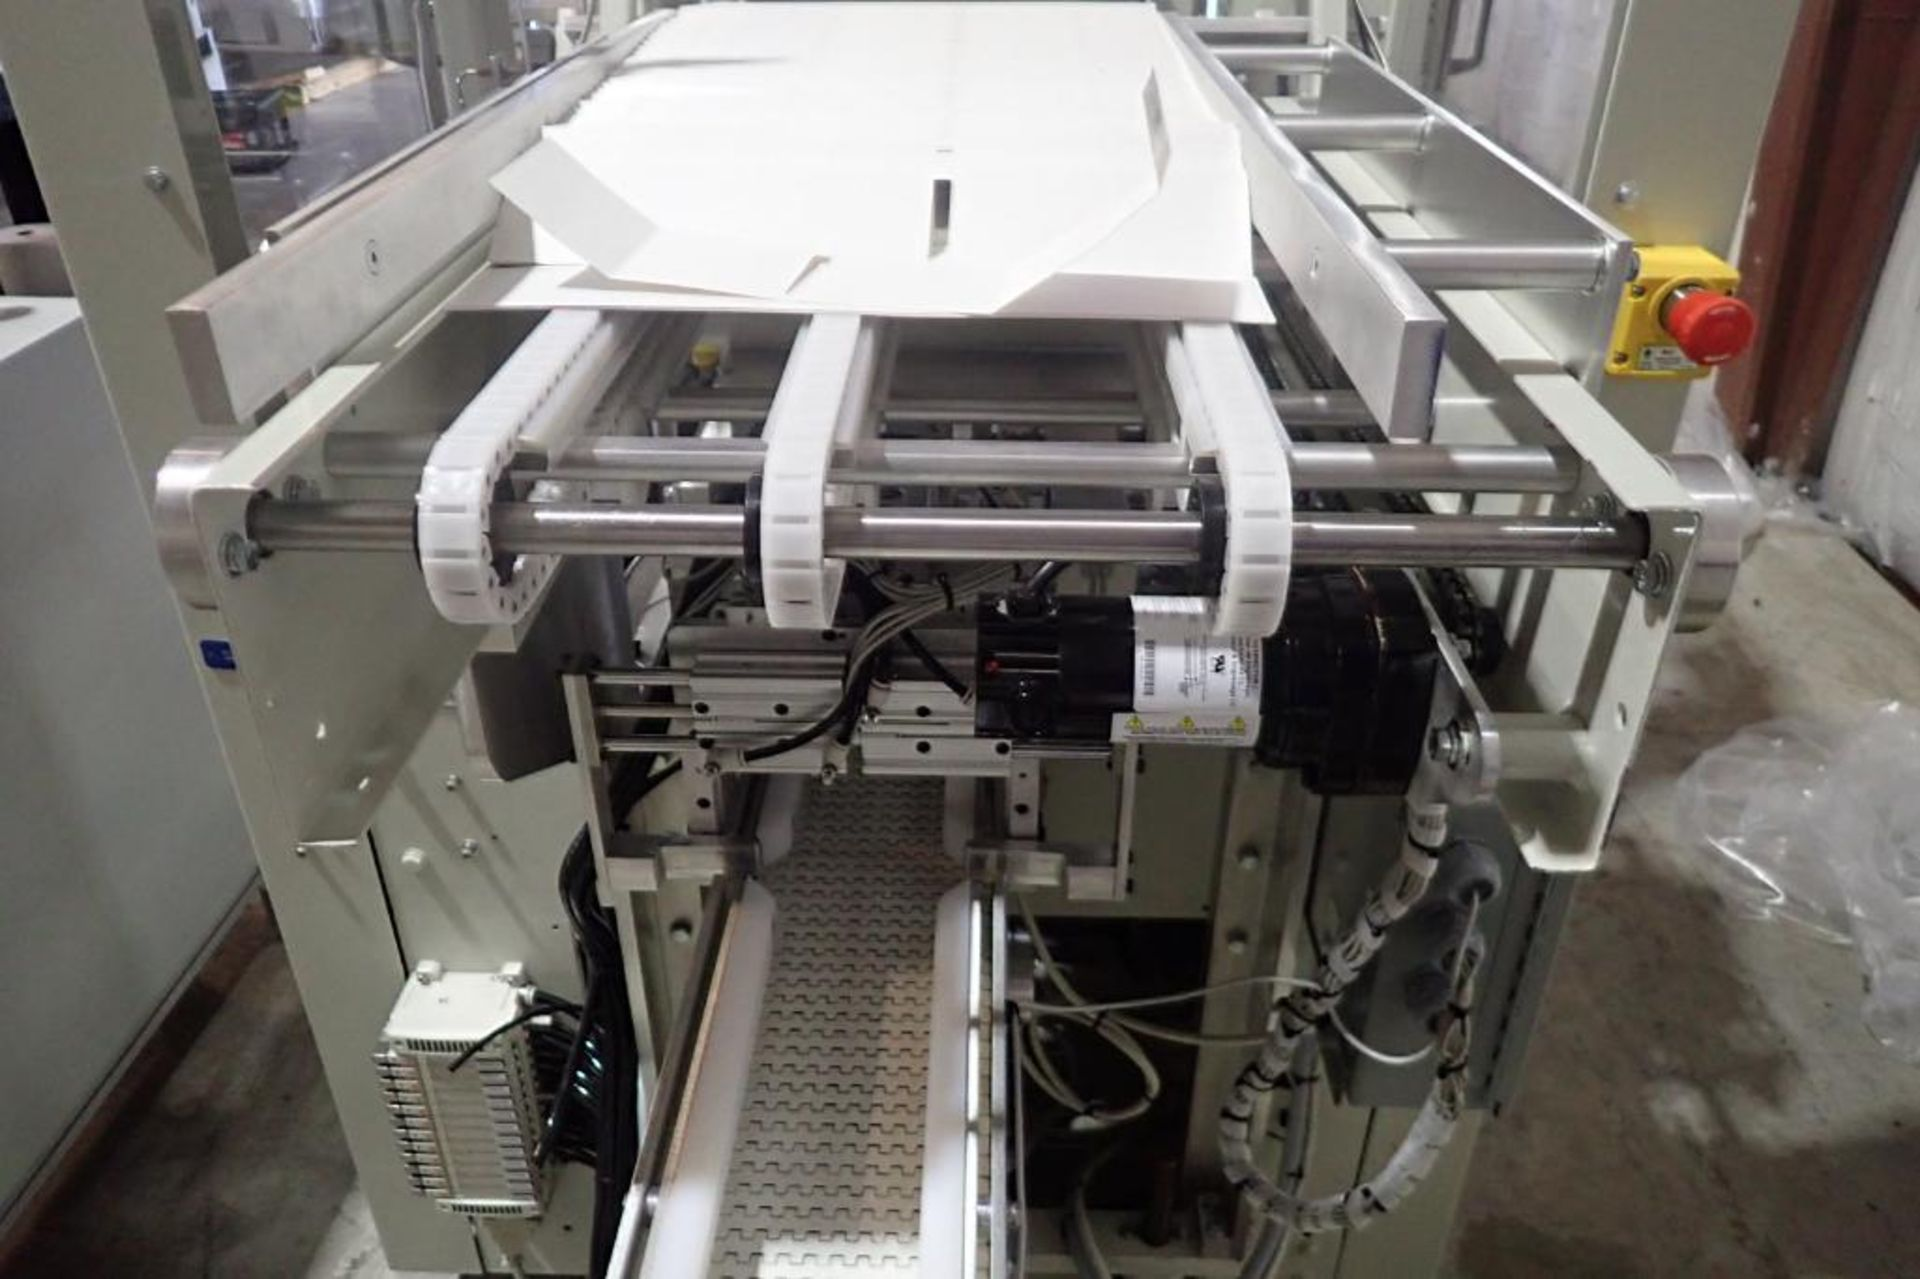 Lot 27 - Patriot Automation round carton belly bander/wrapper, SN 10038712, single lane, 17 in. wide carton